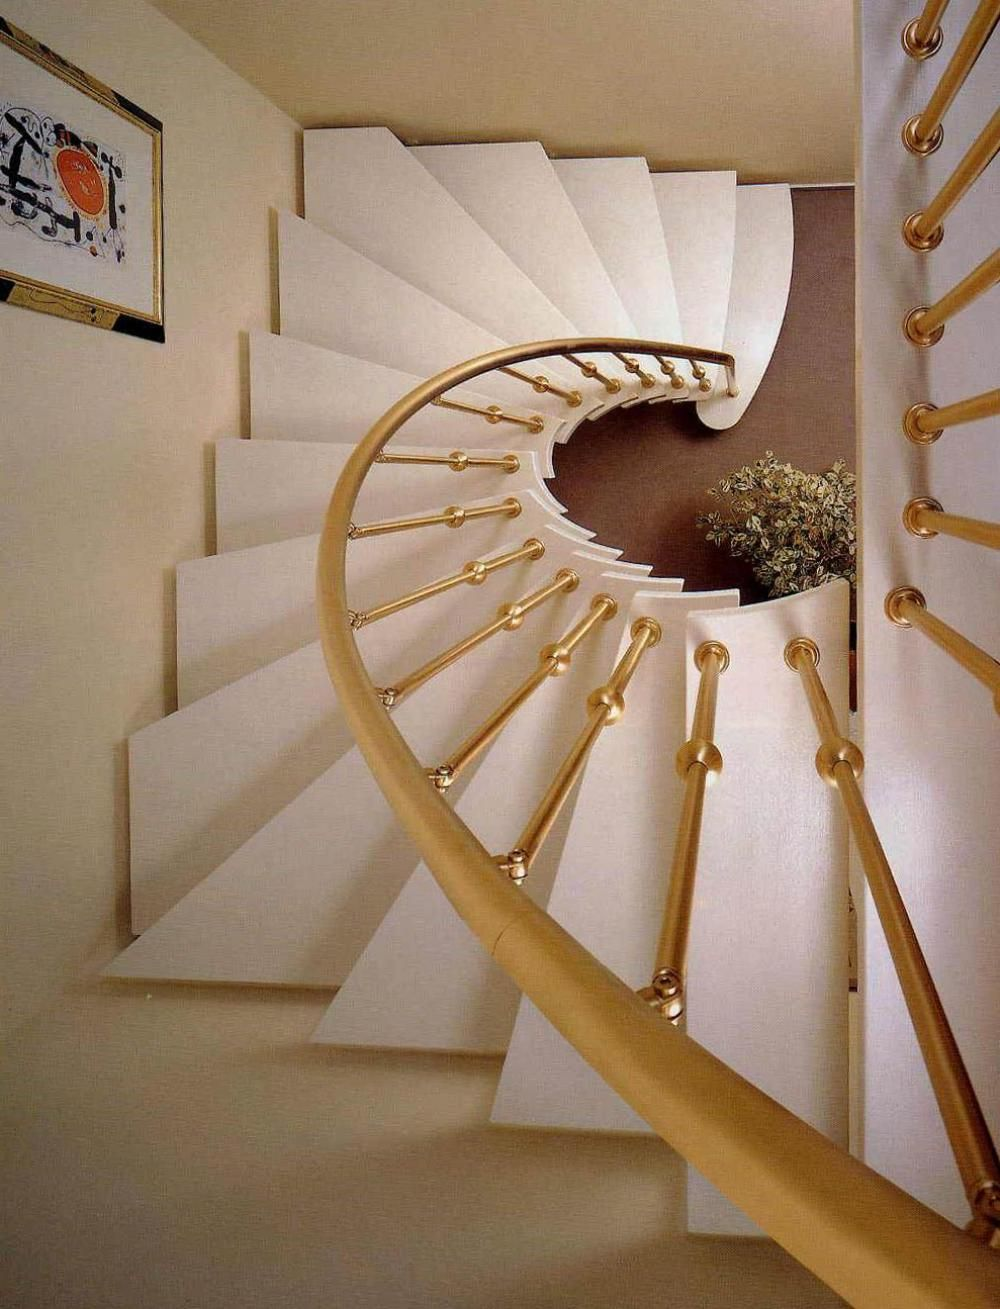 Best Small Spiral Staircase Design With Luxury Gold Balustrade 400 x 300